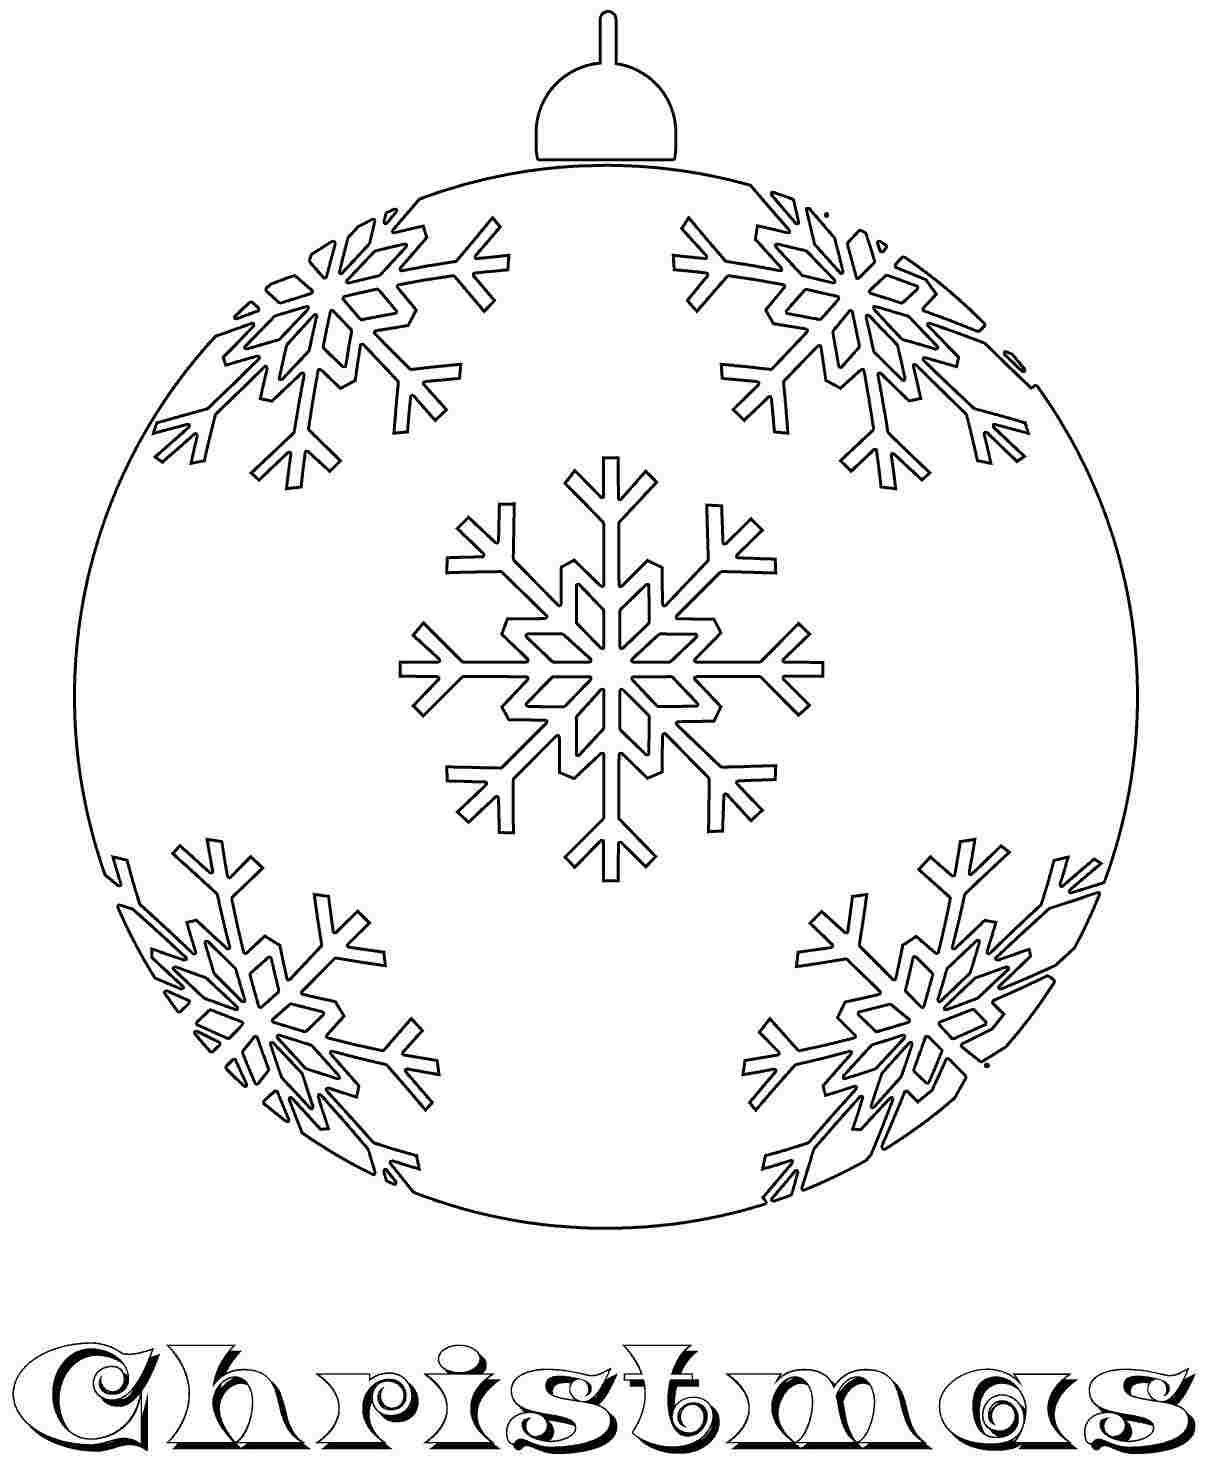 1209x1467 Free Christmas Ornament Coloring Sheets For Kids Girls